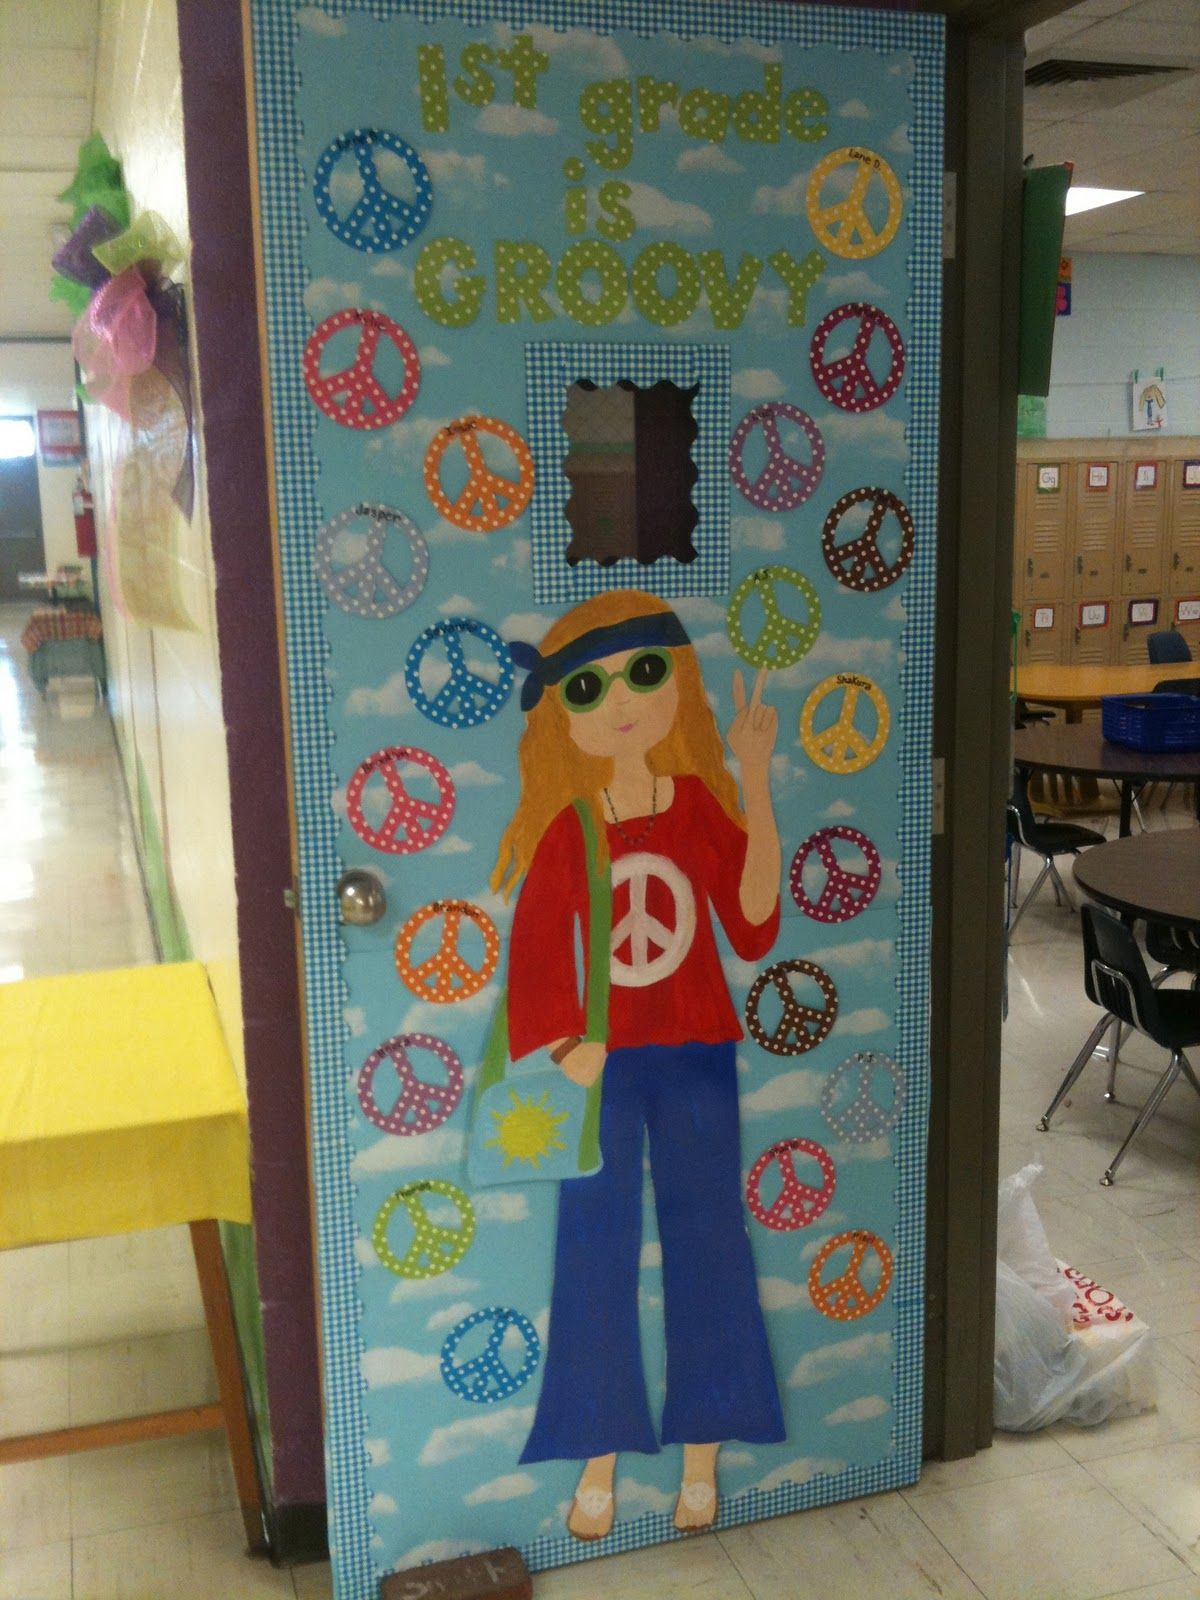 Hippie chick i painted to go with the peace signs on my door